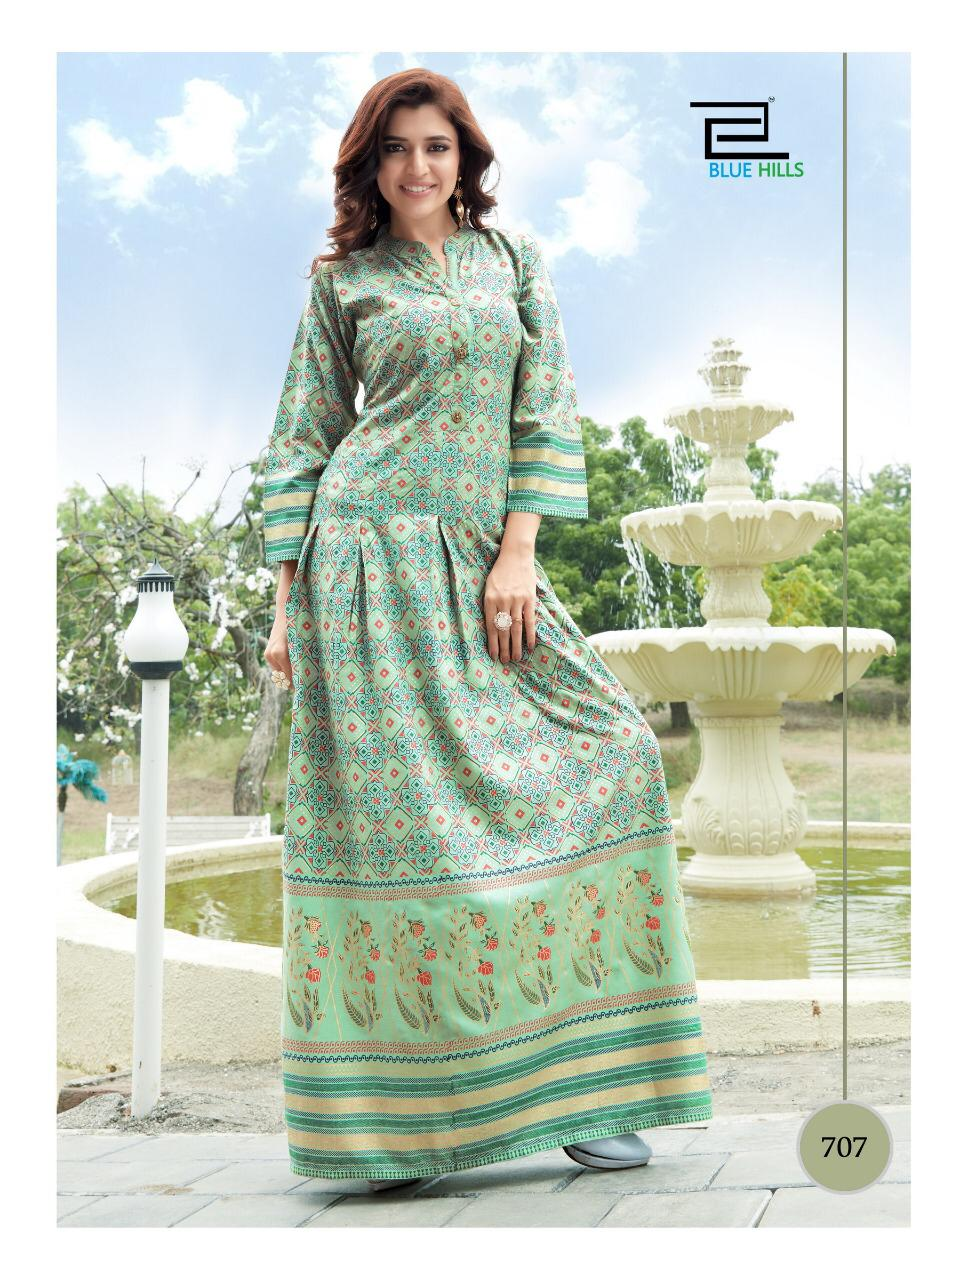 Blue Hills Walkway Vol 7 Designer Rayon Foil Printed Gowns Wholesale